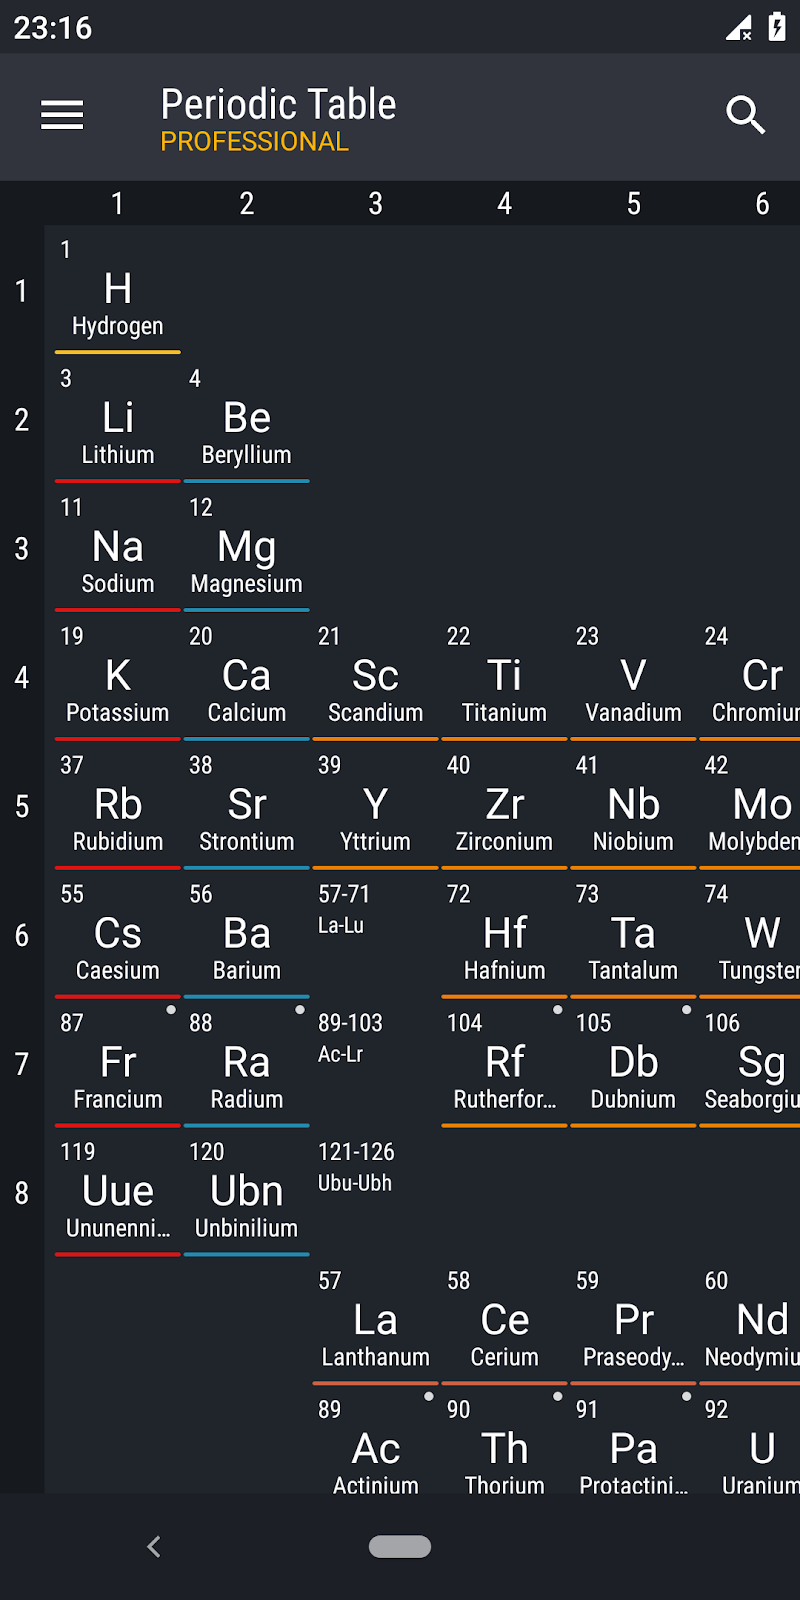 Periodic Table 2019 PRO - Chemistry Screenshot 0